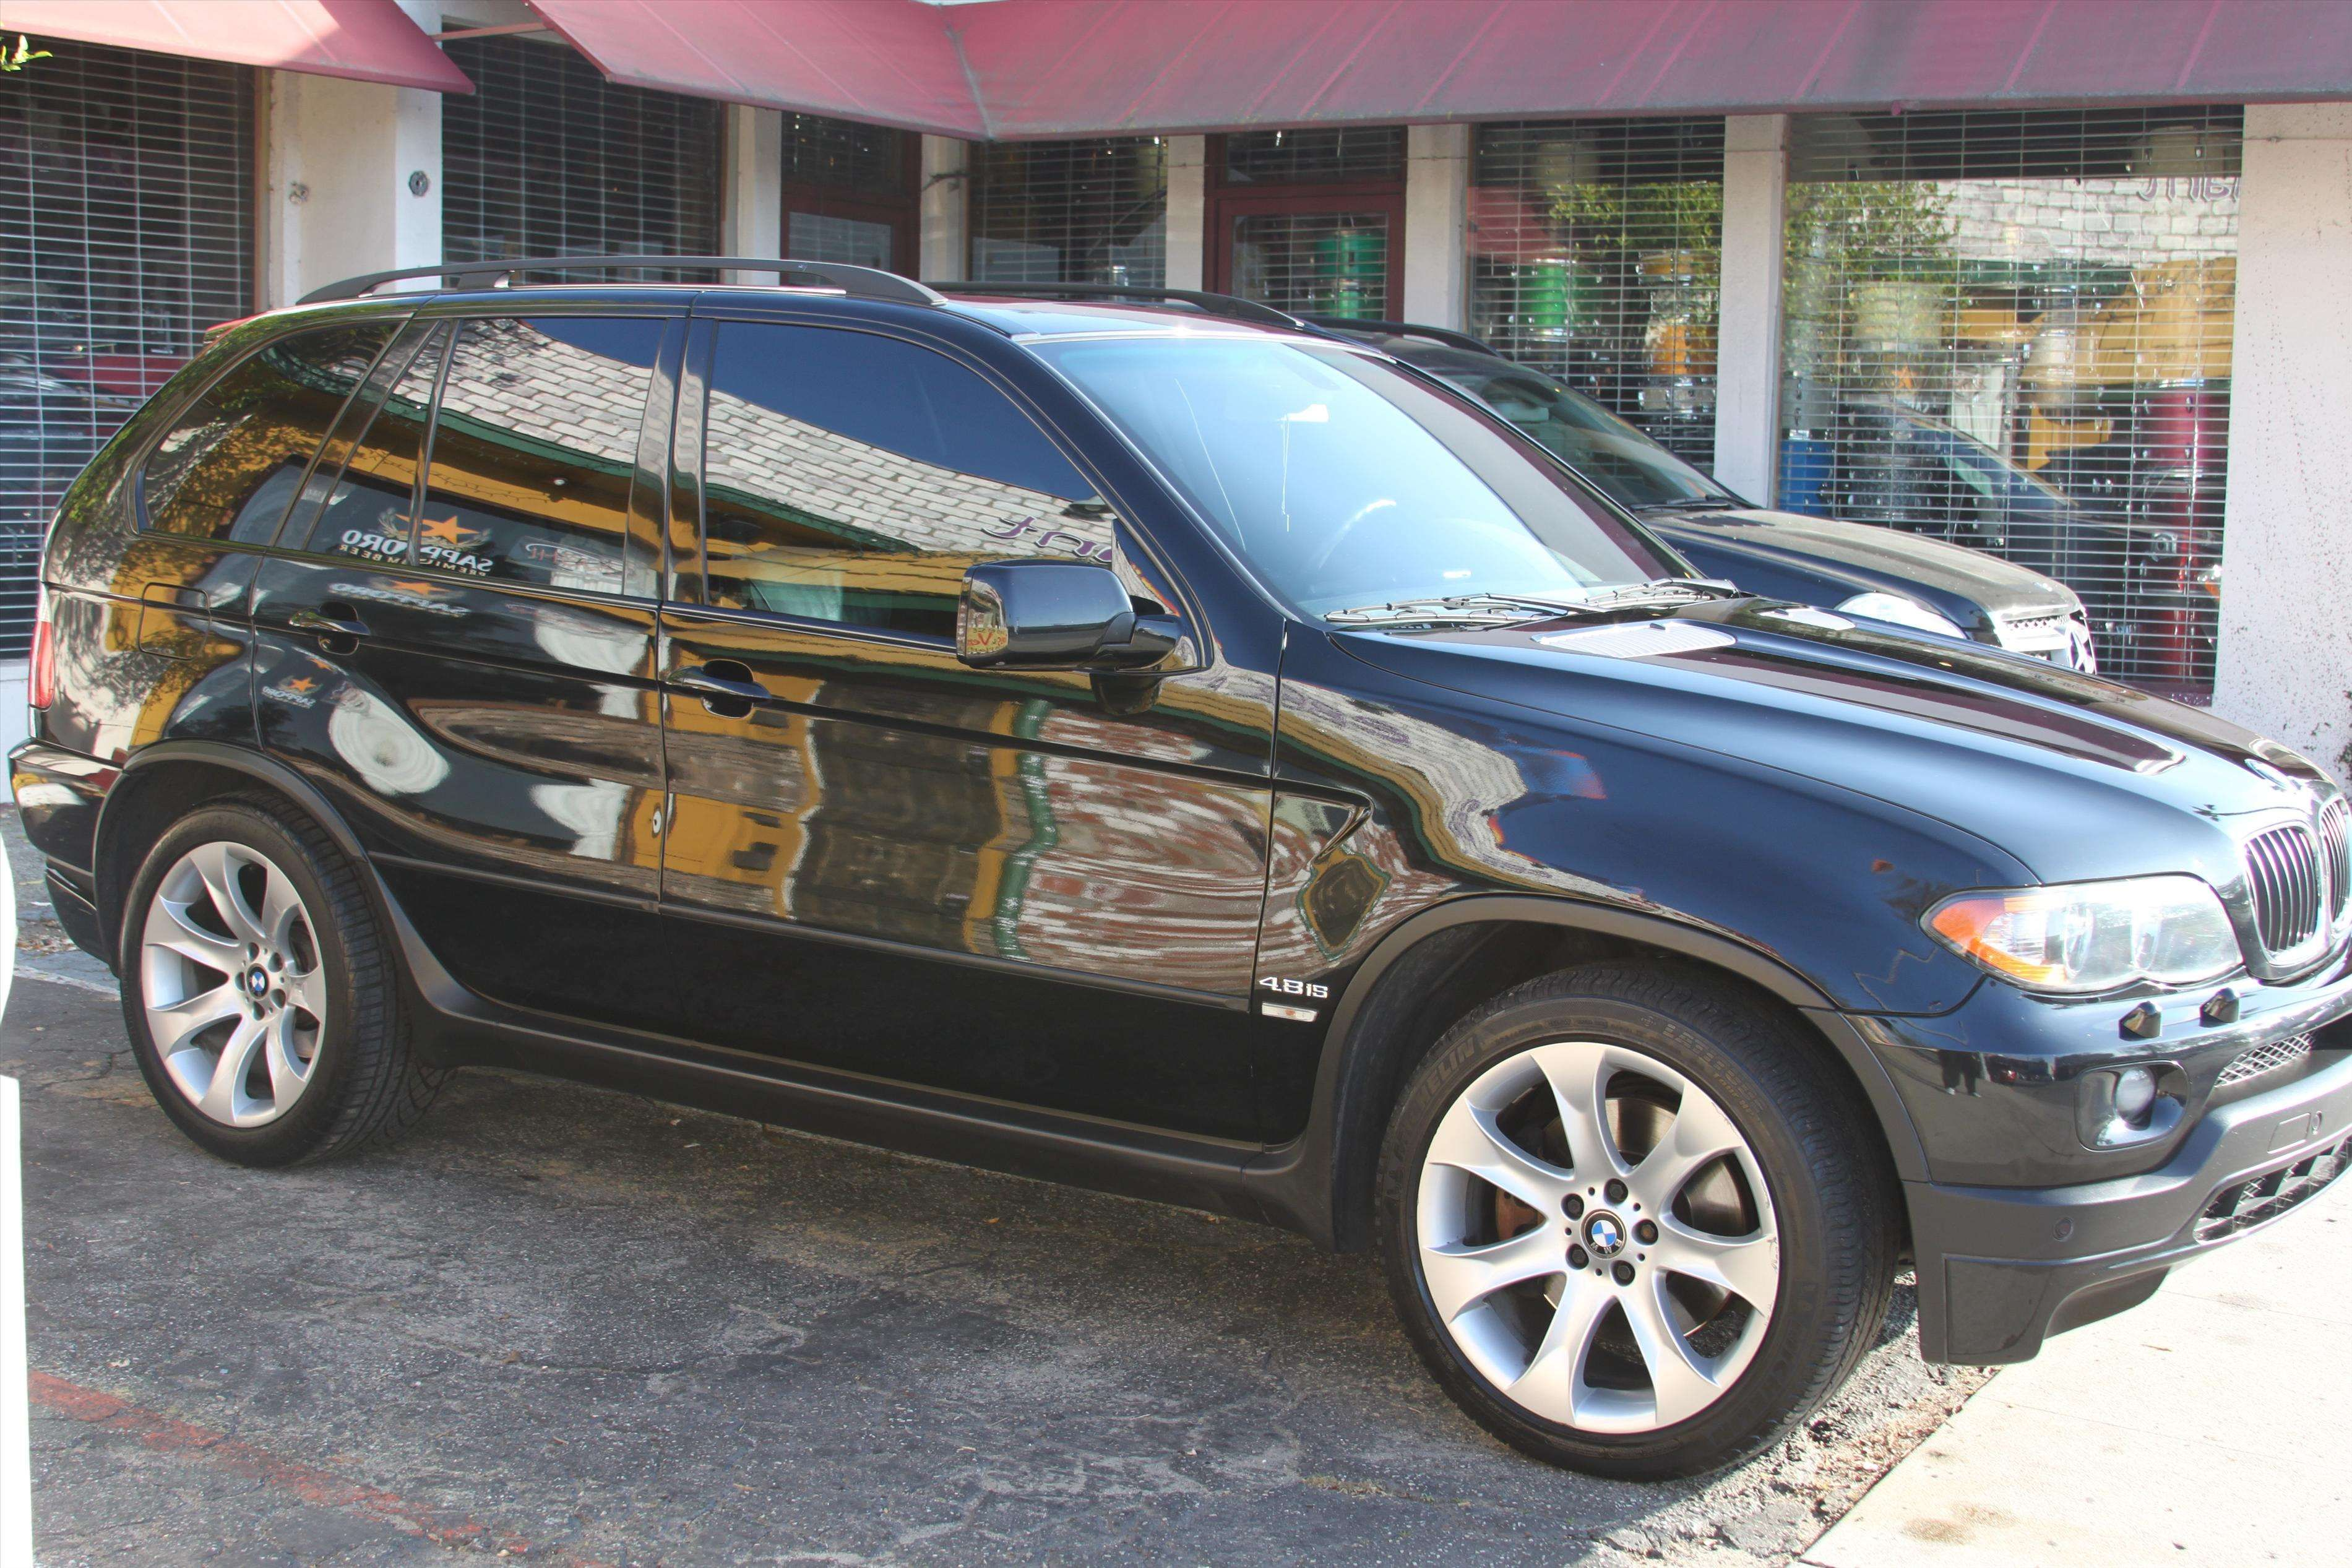 Color black interior color gray body truck engine 7 3l turbocharged - Make Bmw Model X5 M Year 2004 Body Style Suv Exterior Color